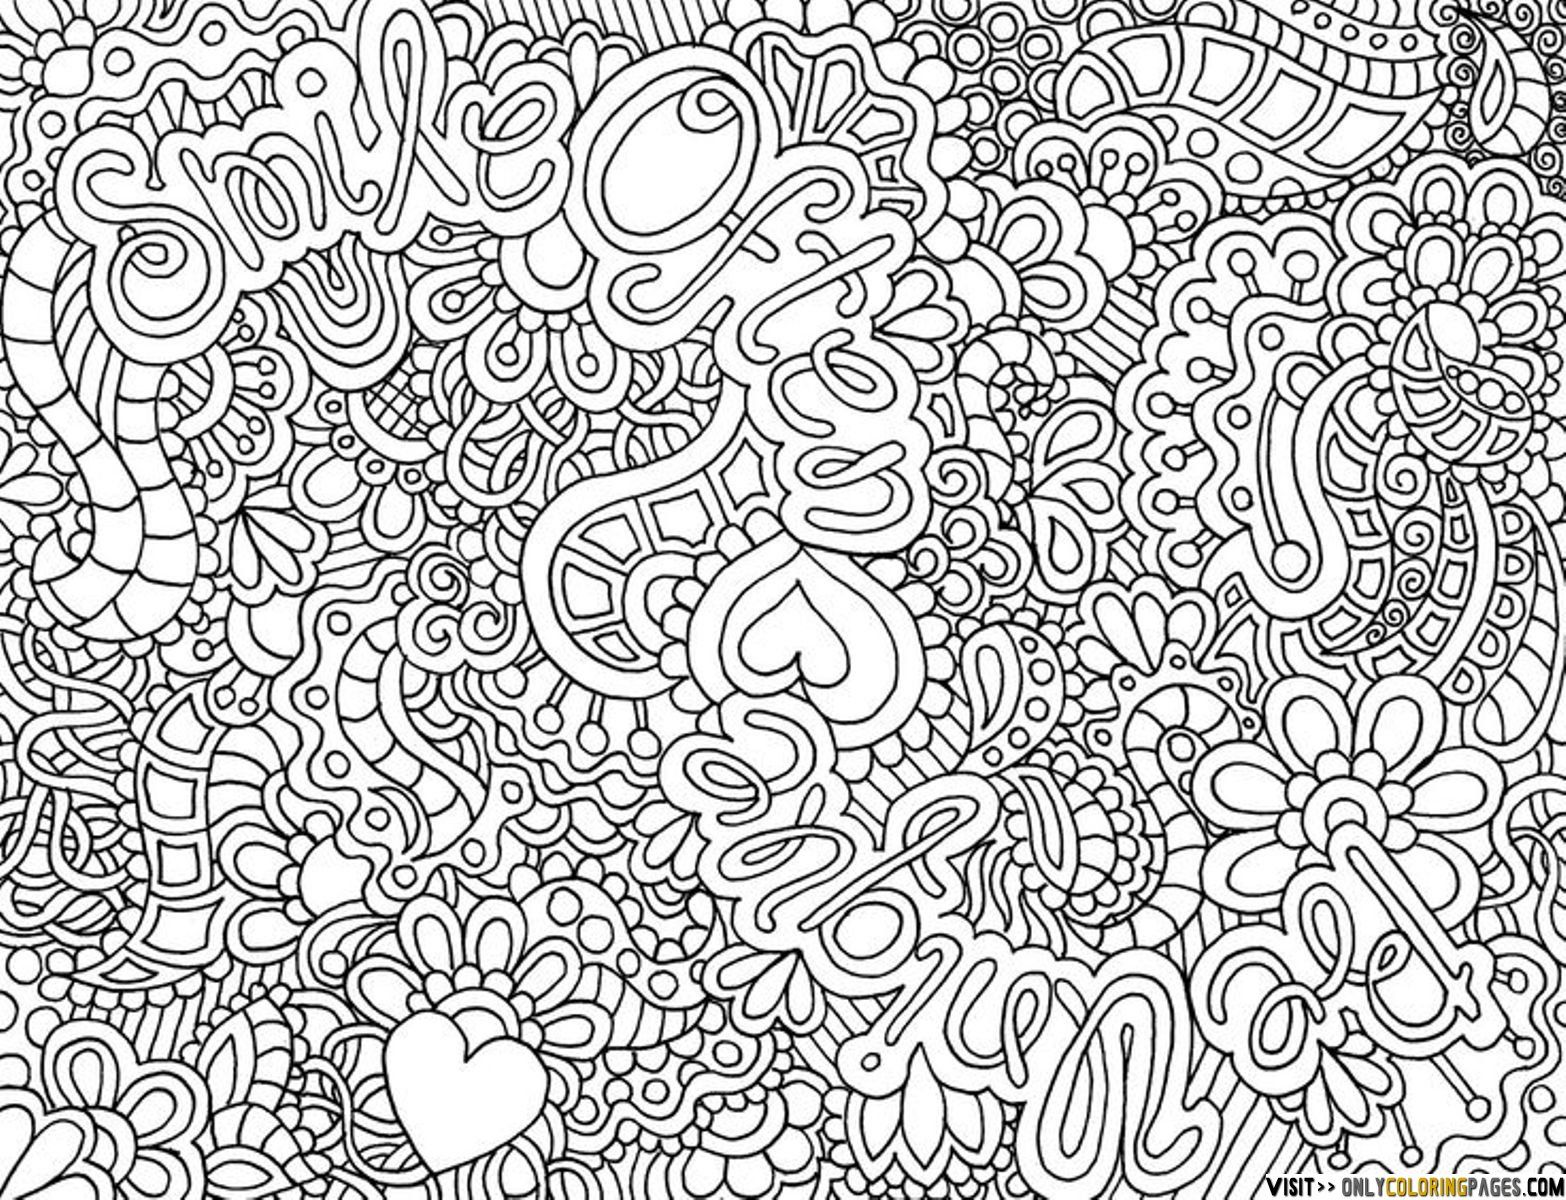 Coloring Pages Of Flowers For Teenagers Difficult Detailed Coloring Pages Coloring Pages For Teenagers